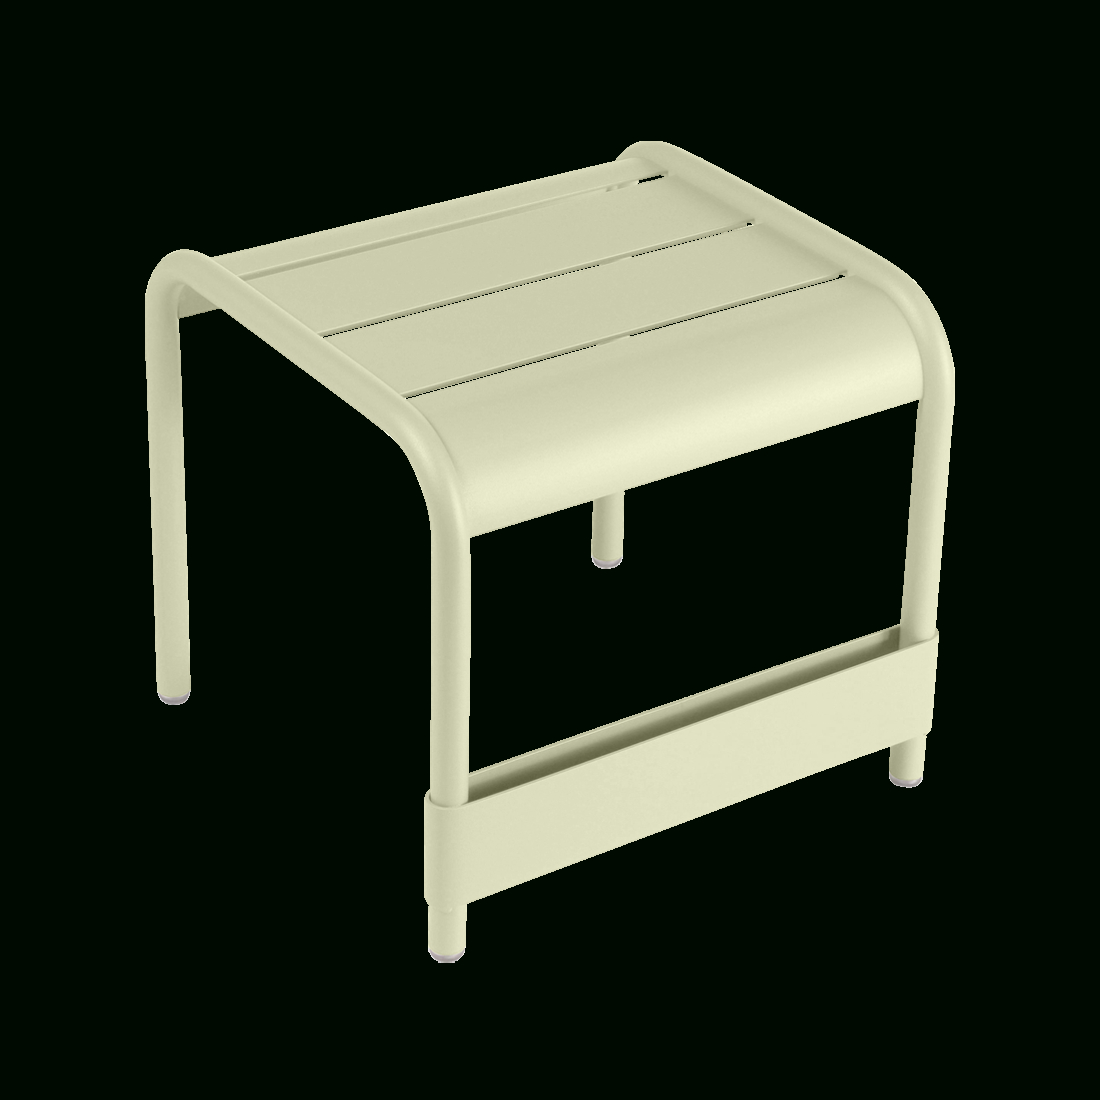 Petite Table Basse / Repose-Pieds Luxembourg, Pour Salon De ... tout Petite Table De Salon De Jardin